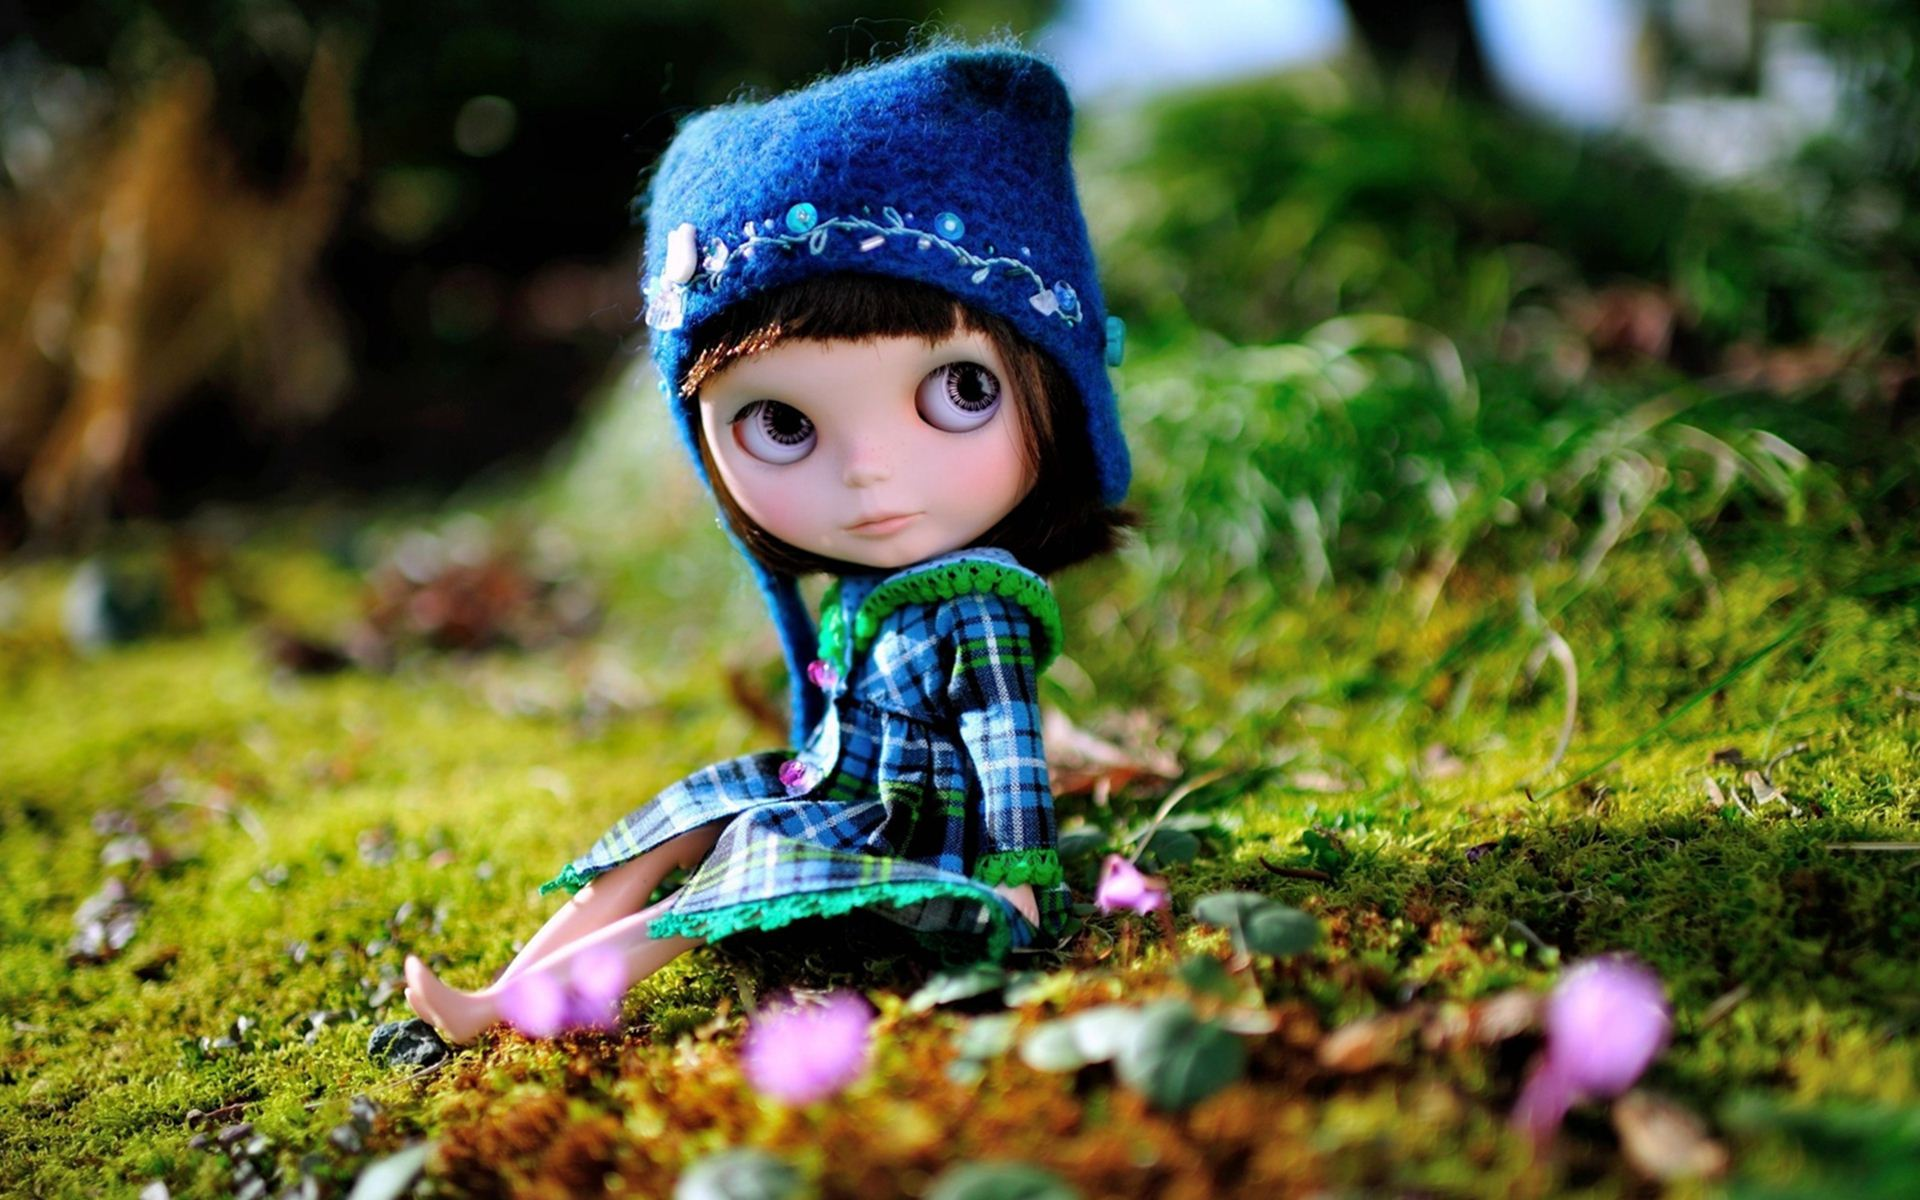 New Cute Baby Doll Wallpaper Cool Canon Wallpaper 1920x1200 33345